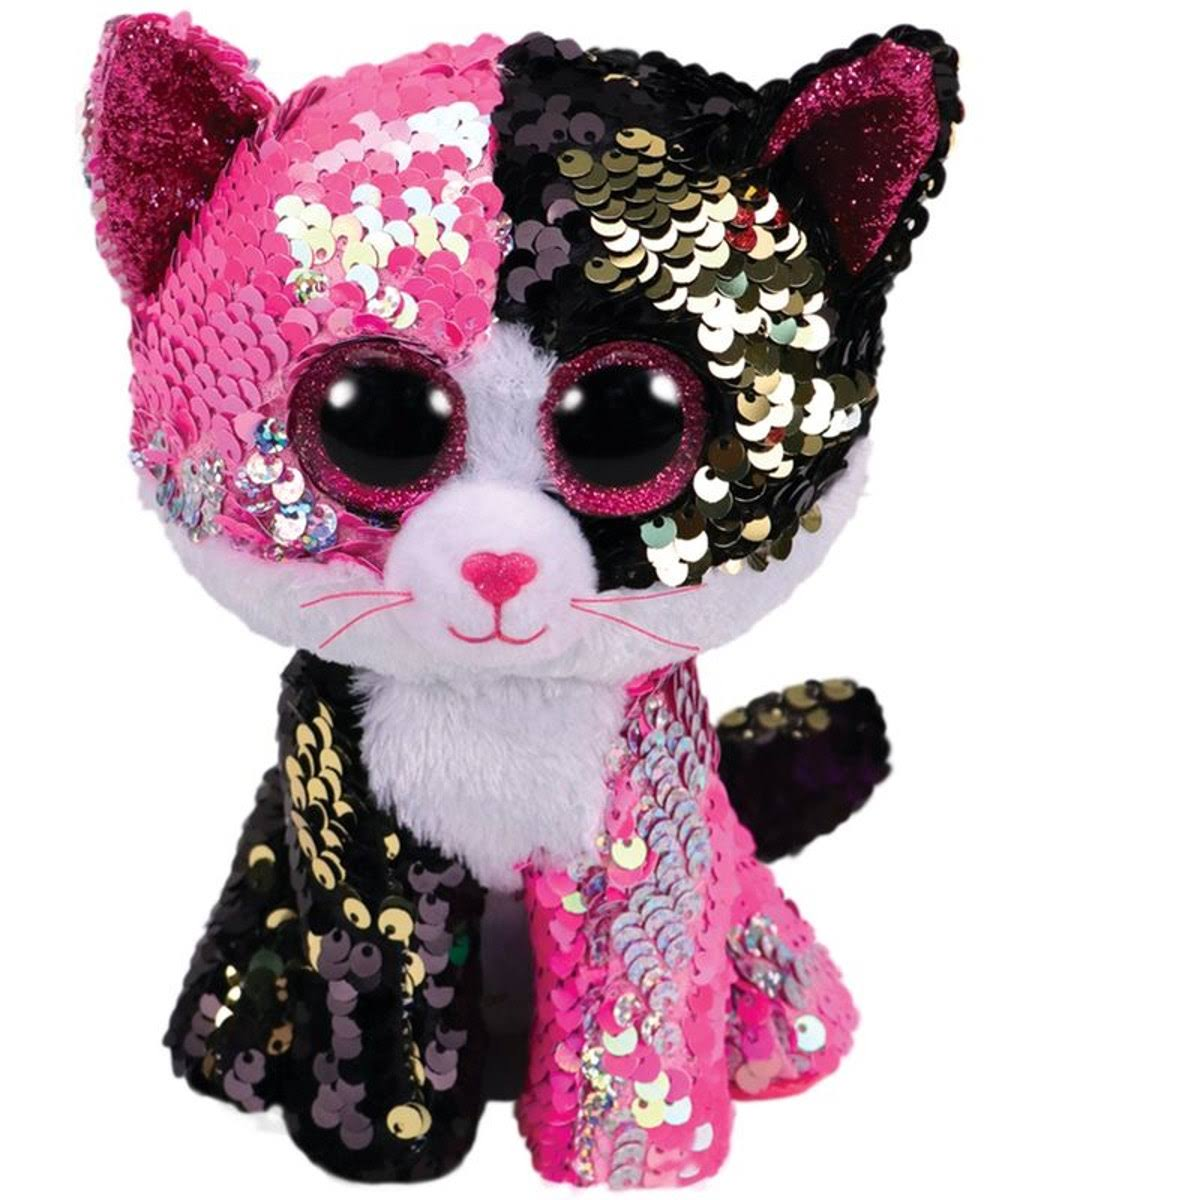 Ty Flippables Malibu The Flippable Sequin Cat Toy - 6""